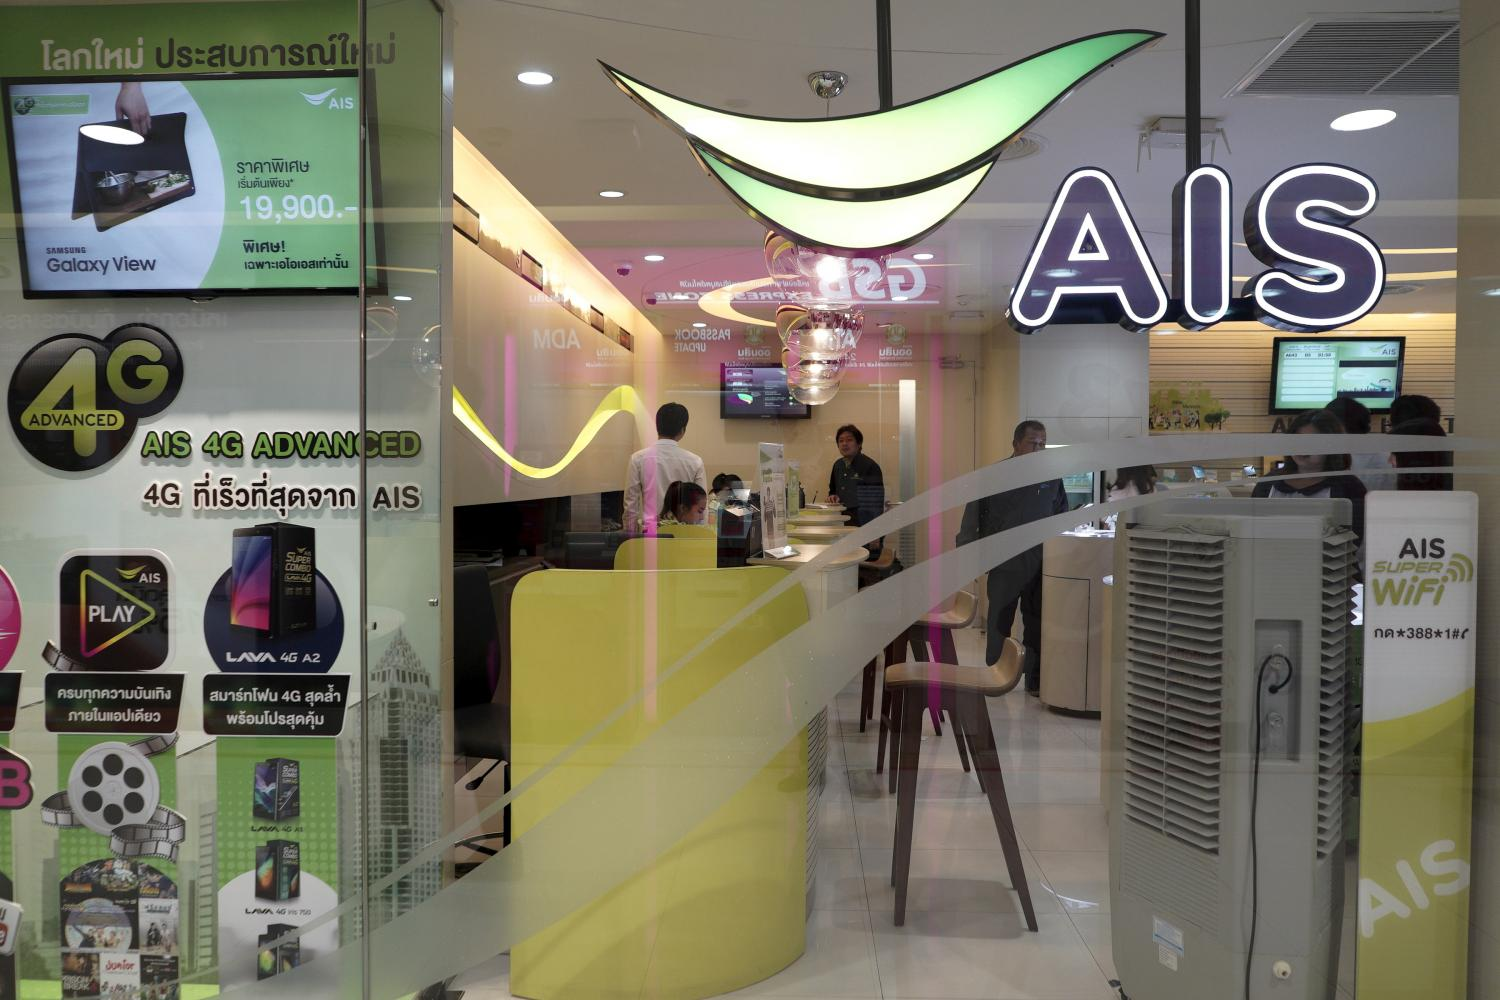 Customers wait for service at an AIS shop in Bangkok.(Reuters photo)